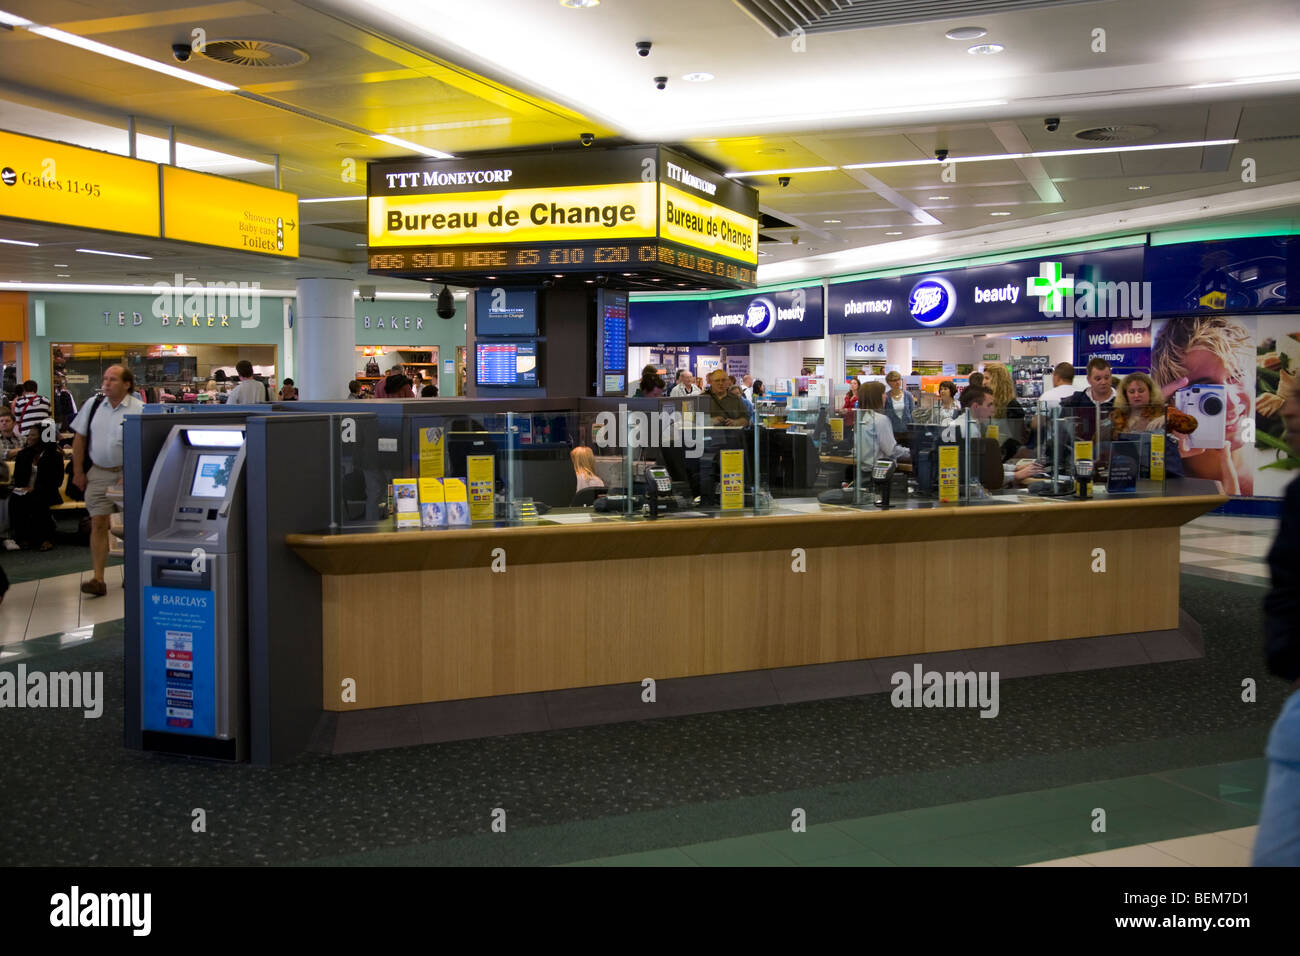 Bureau de change office operated by ttt moneycorp at gatwick airport stock photo 26260445 alamy - Gatwick airport bureau de change ...